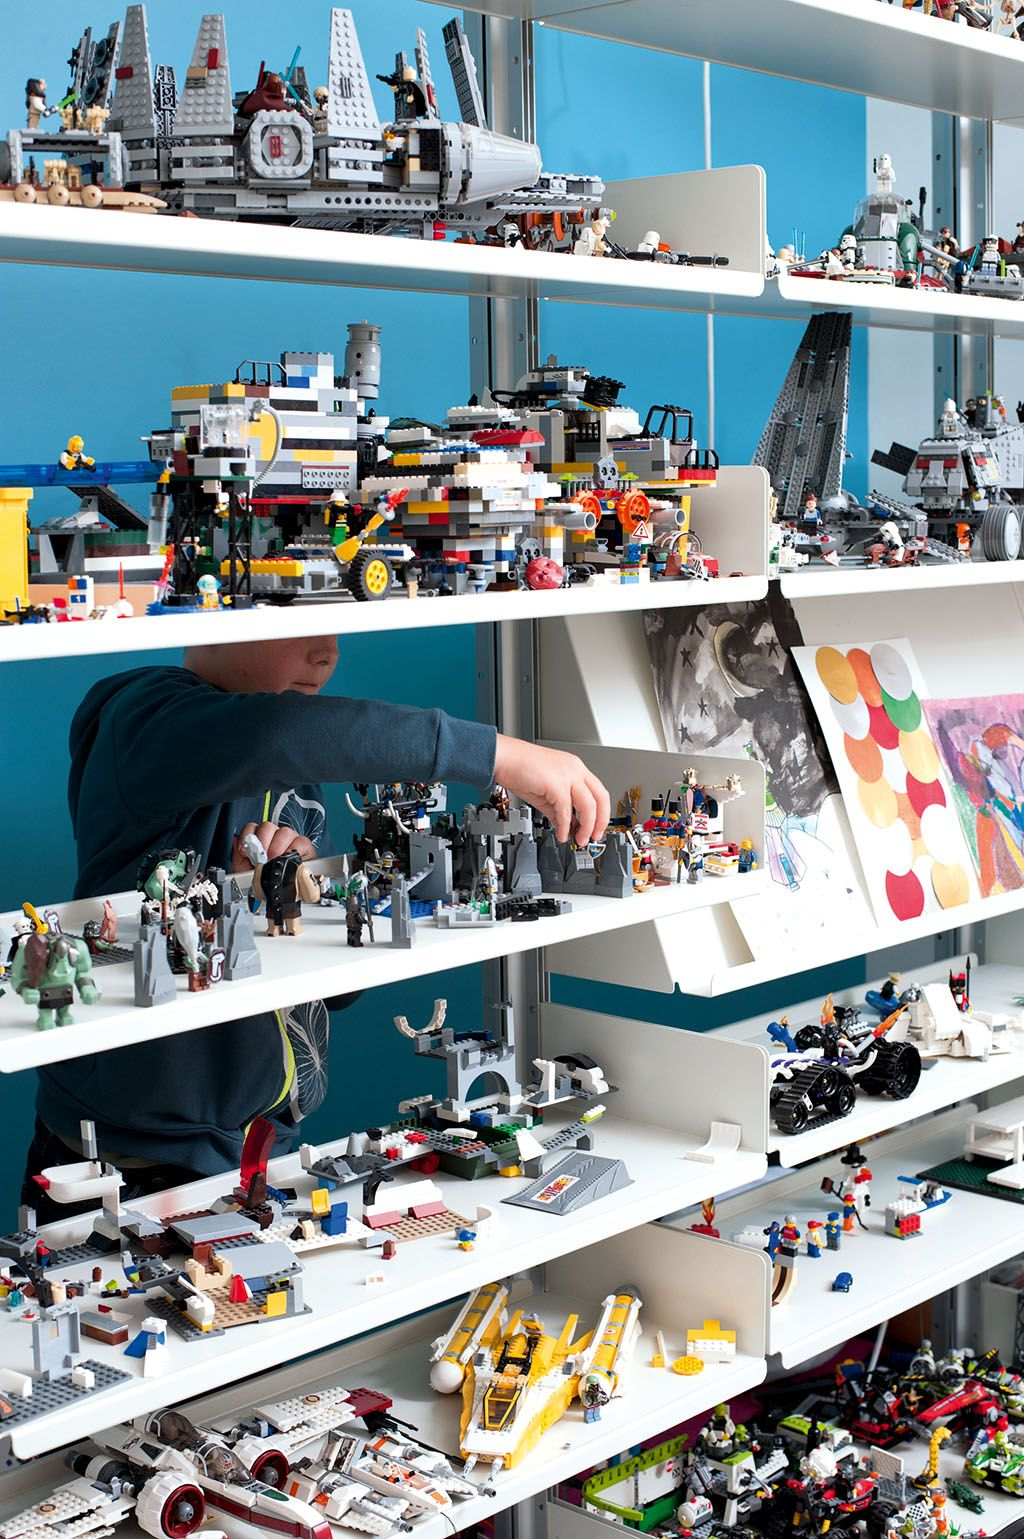 Room 2 Build Bedroom Kids Lego: Lego Room, Lego Display